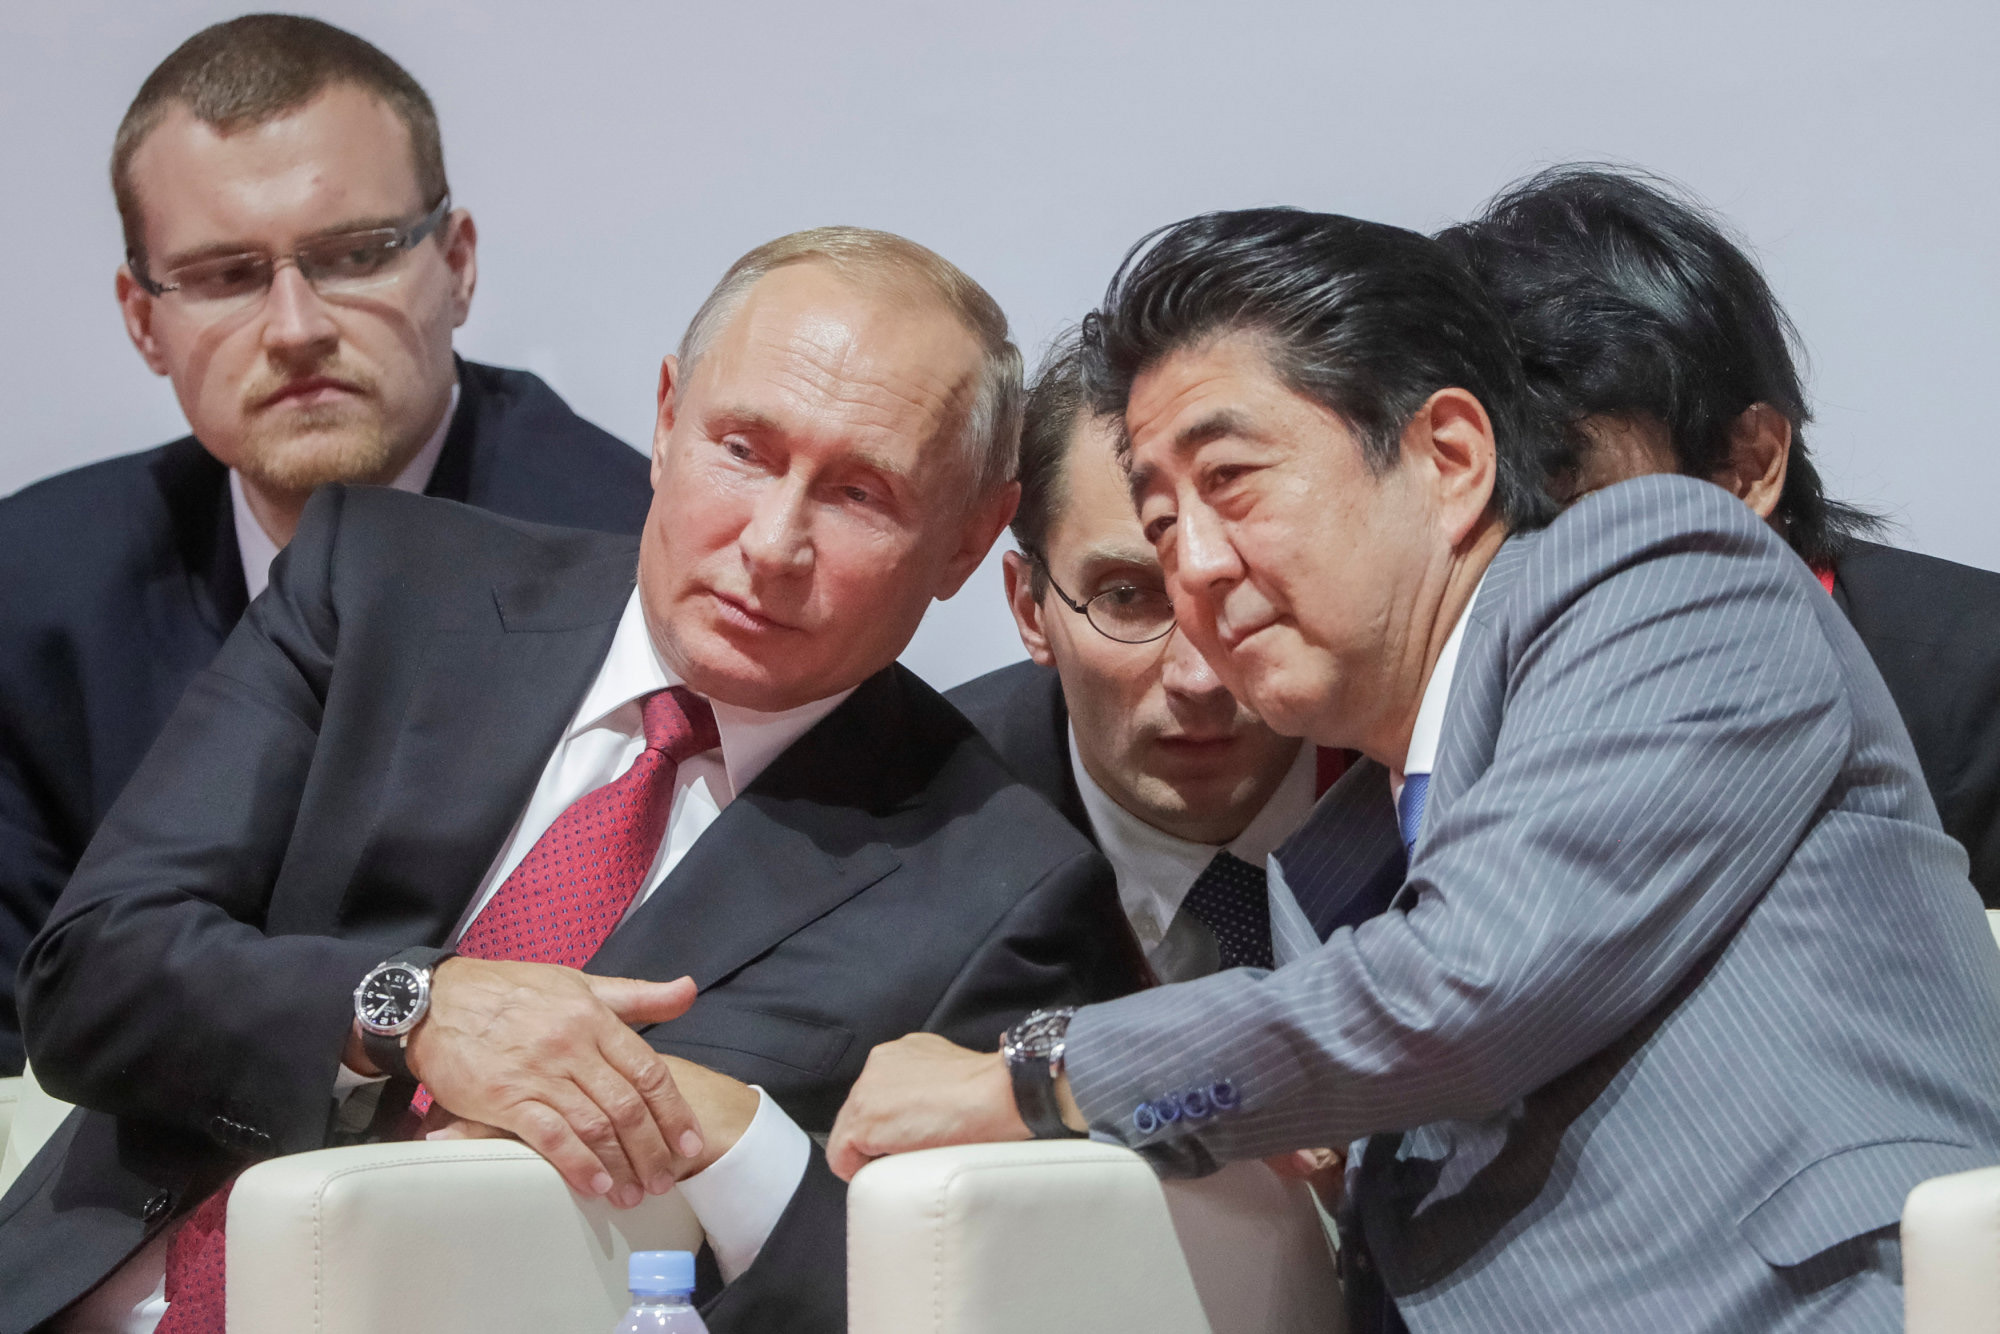 Russian President Vladimir Putin and Prime Minister Shinzo Abe watch an international judo tournament on the sidelines of the Eastern Economic Forum in Vladivostok, Russia, in September. The two are trying to lay the groundwork for reaching an agreement this year on a long-standing territorial dispute. | REUTERS